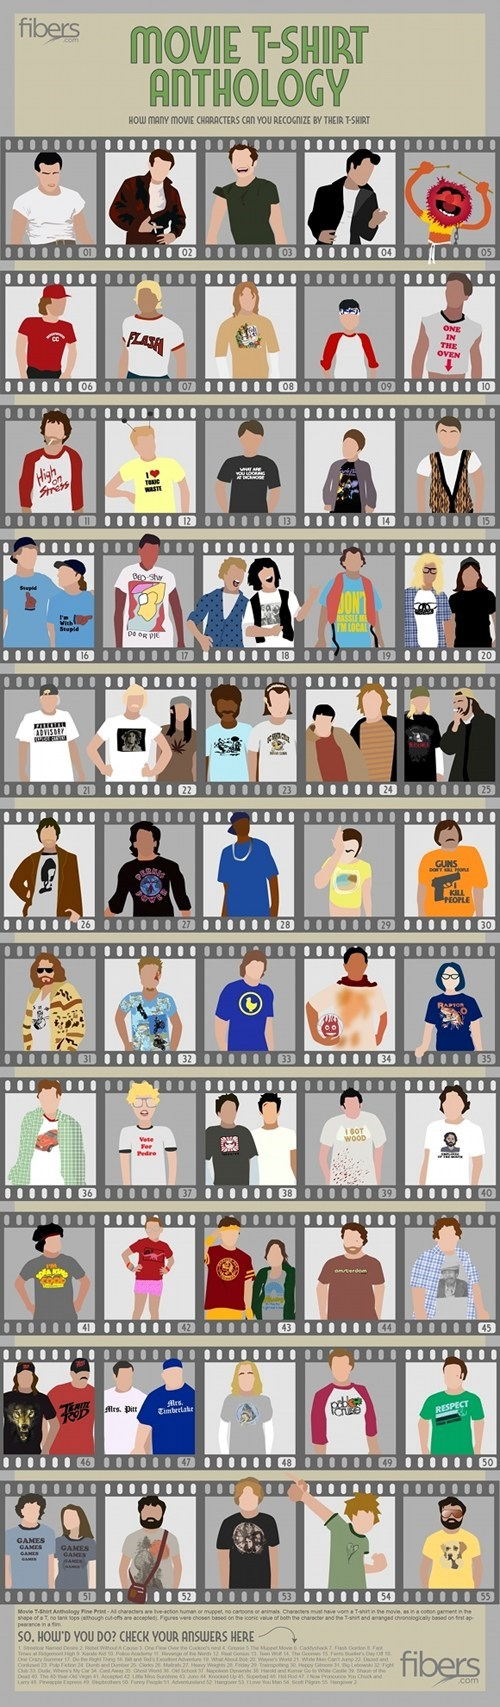 movie t-shirt anthology quiz - 6683696640